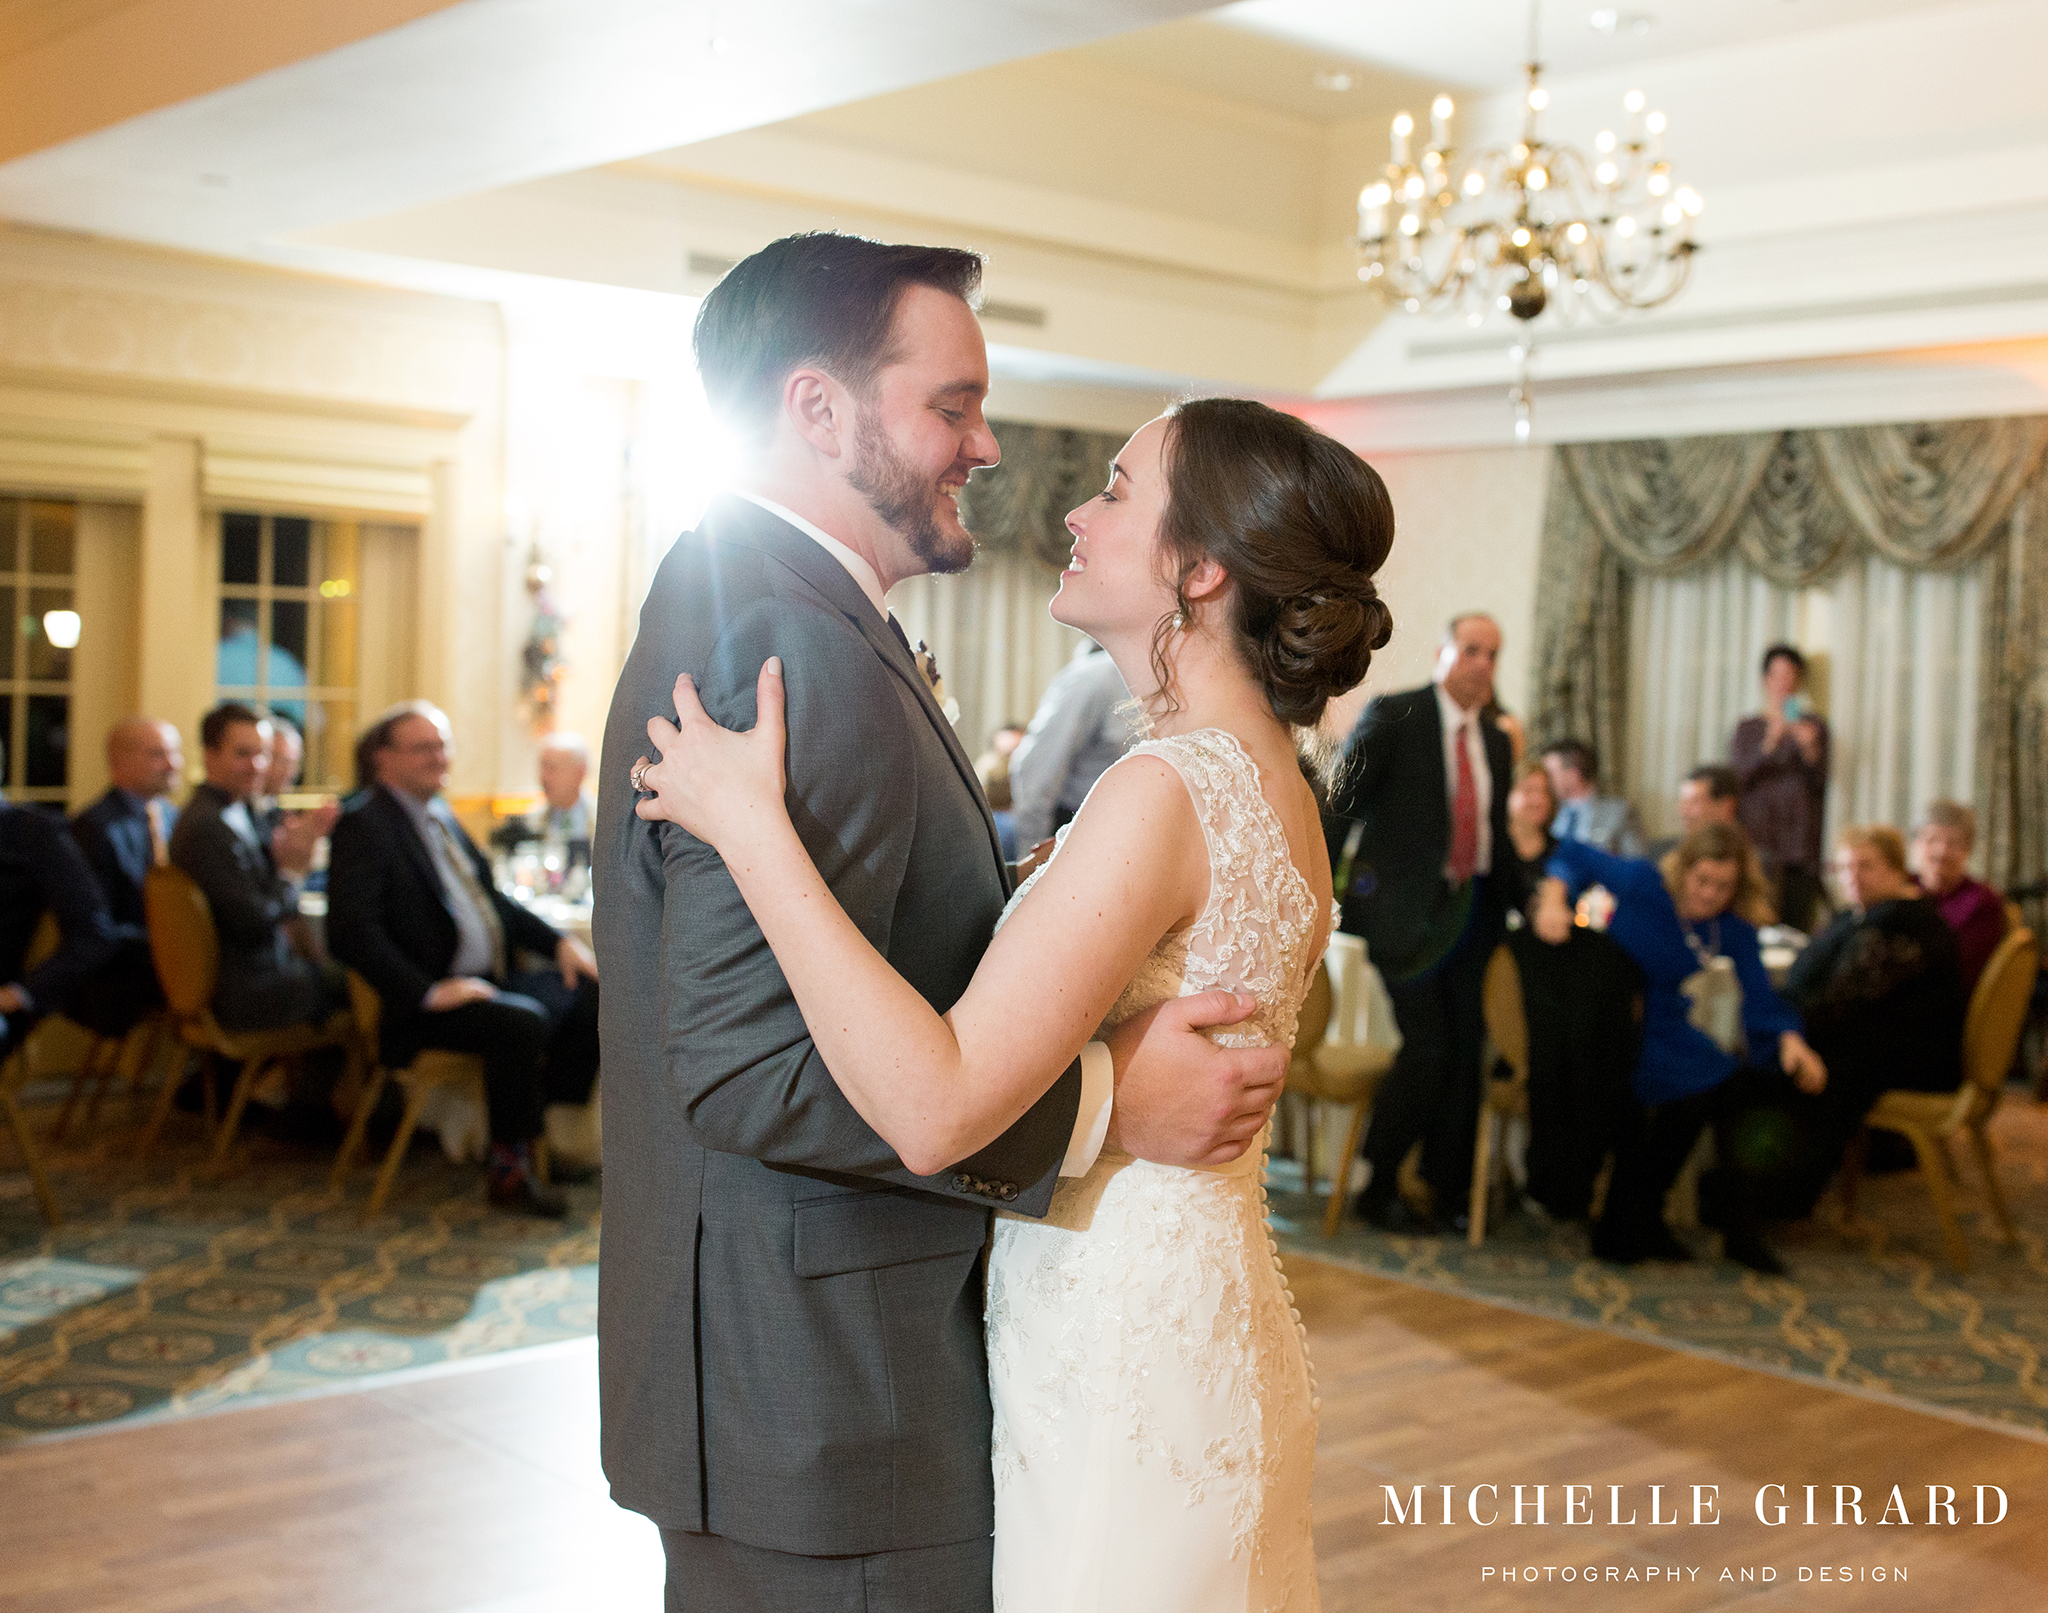 WinterWedding_AmherstMA_LordJefferyInn_MichelleGirardPhotography05.jpg